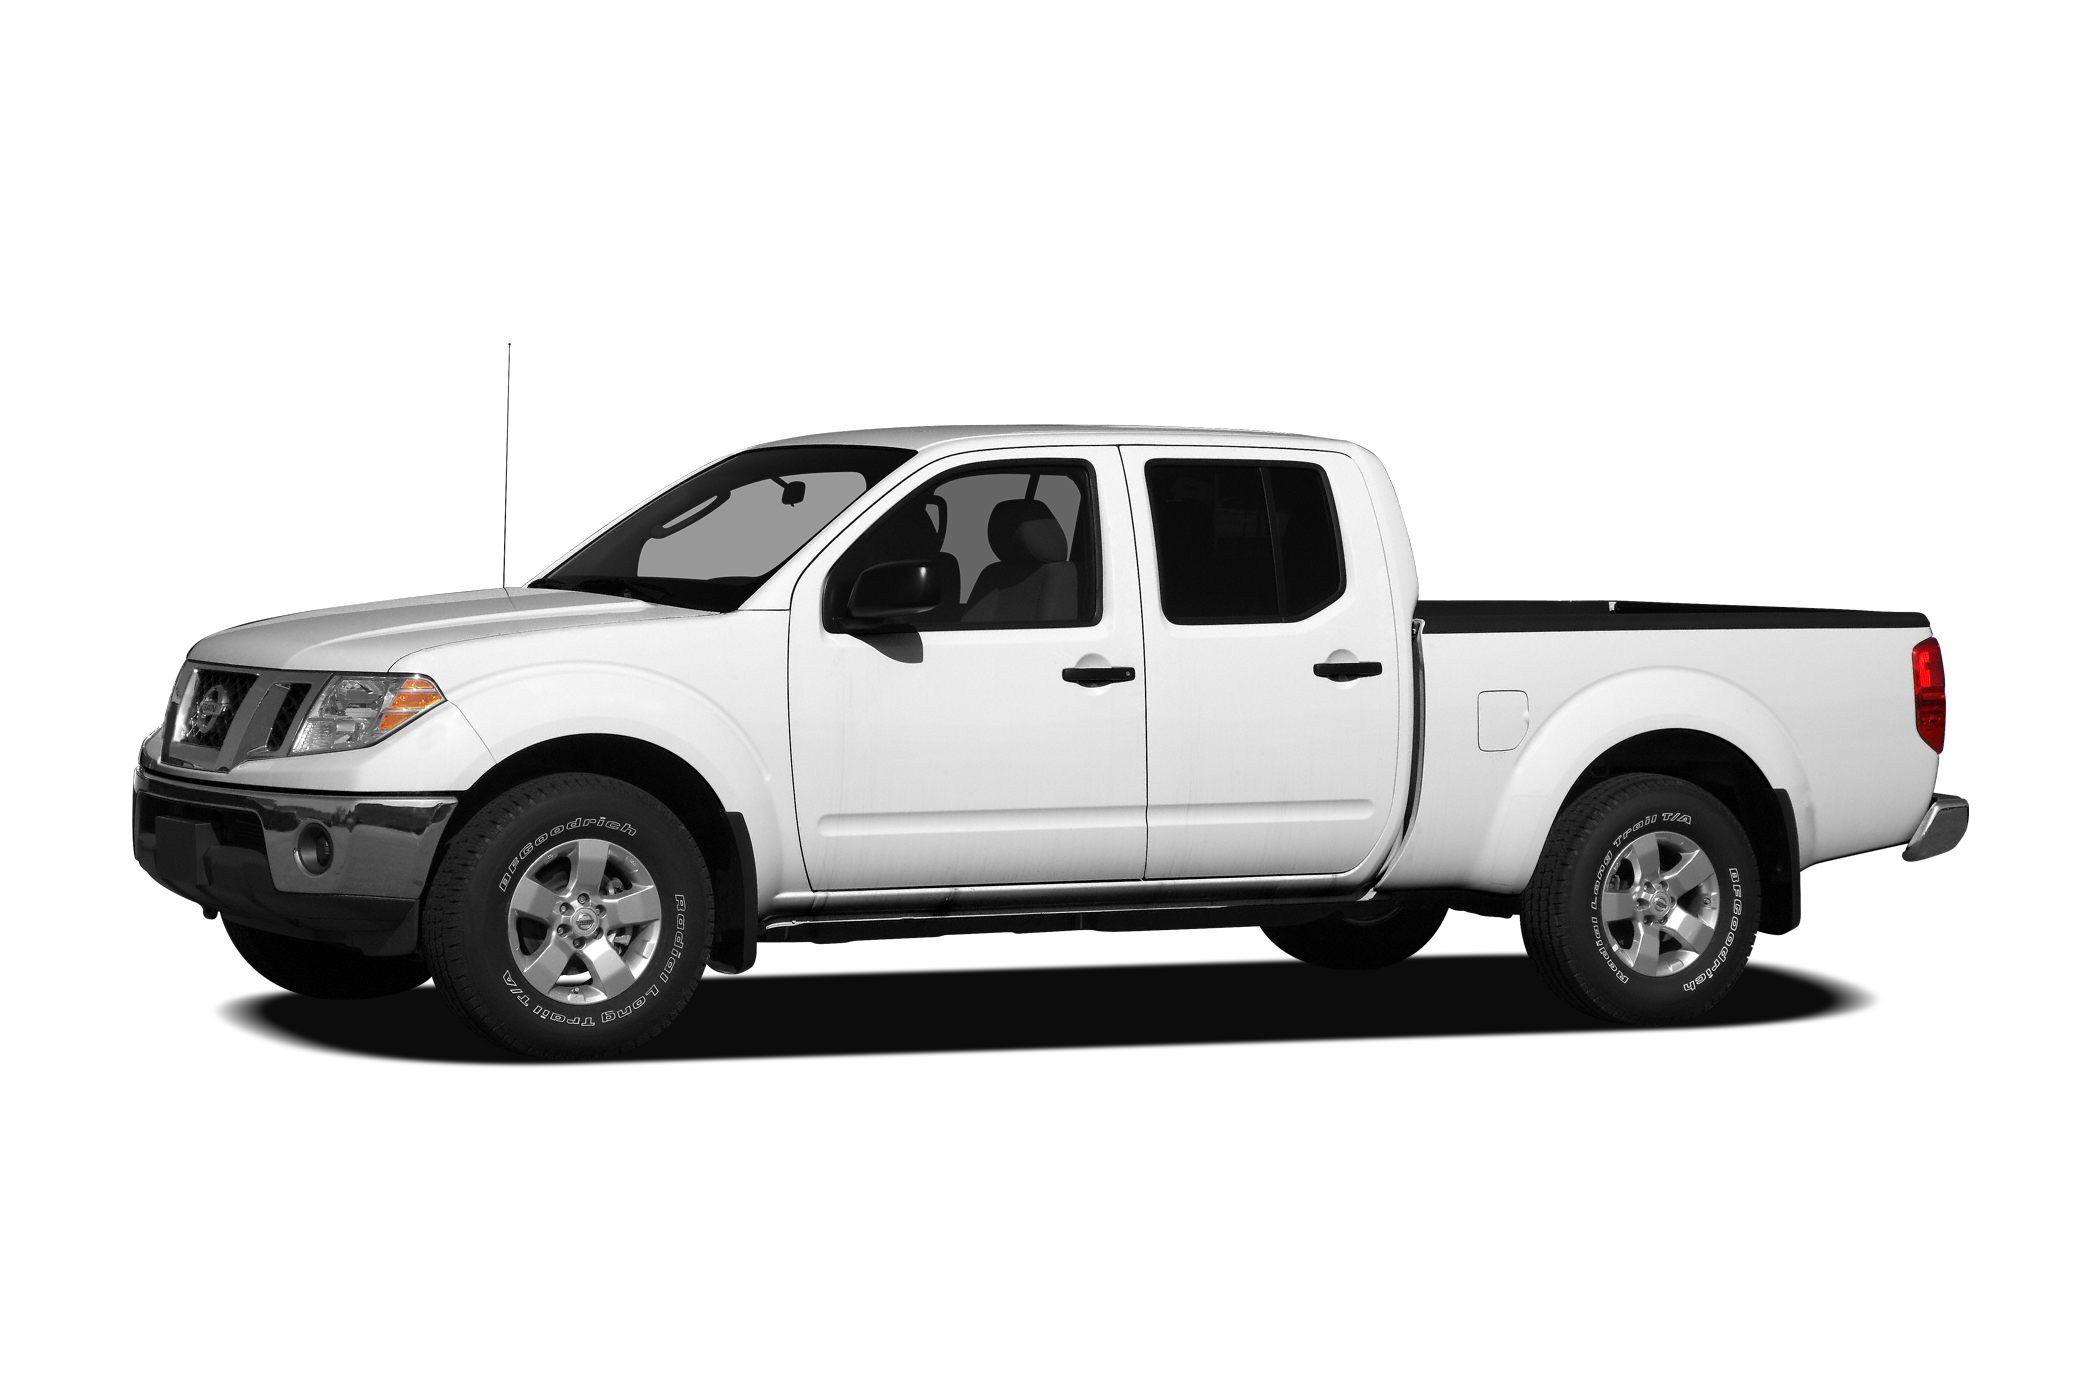 2010 Nissan Frontier SE 40L V6 DOHC Meteoric acceleration Heads up hybrids theres another gam